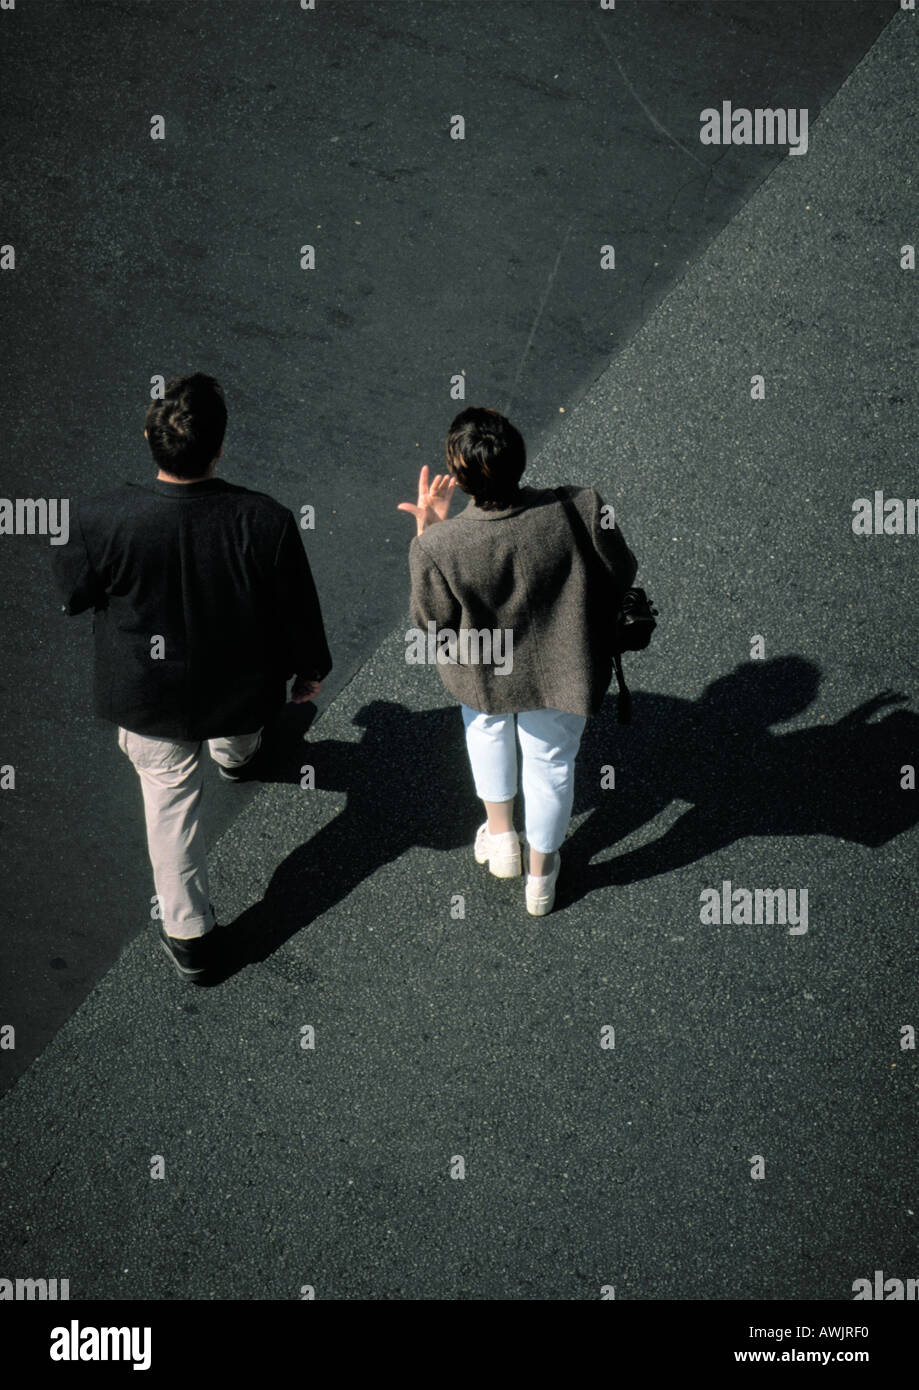 Two people walking on asphalt, high angle view Stock Photo